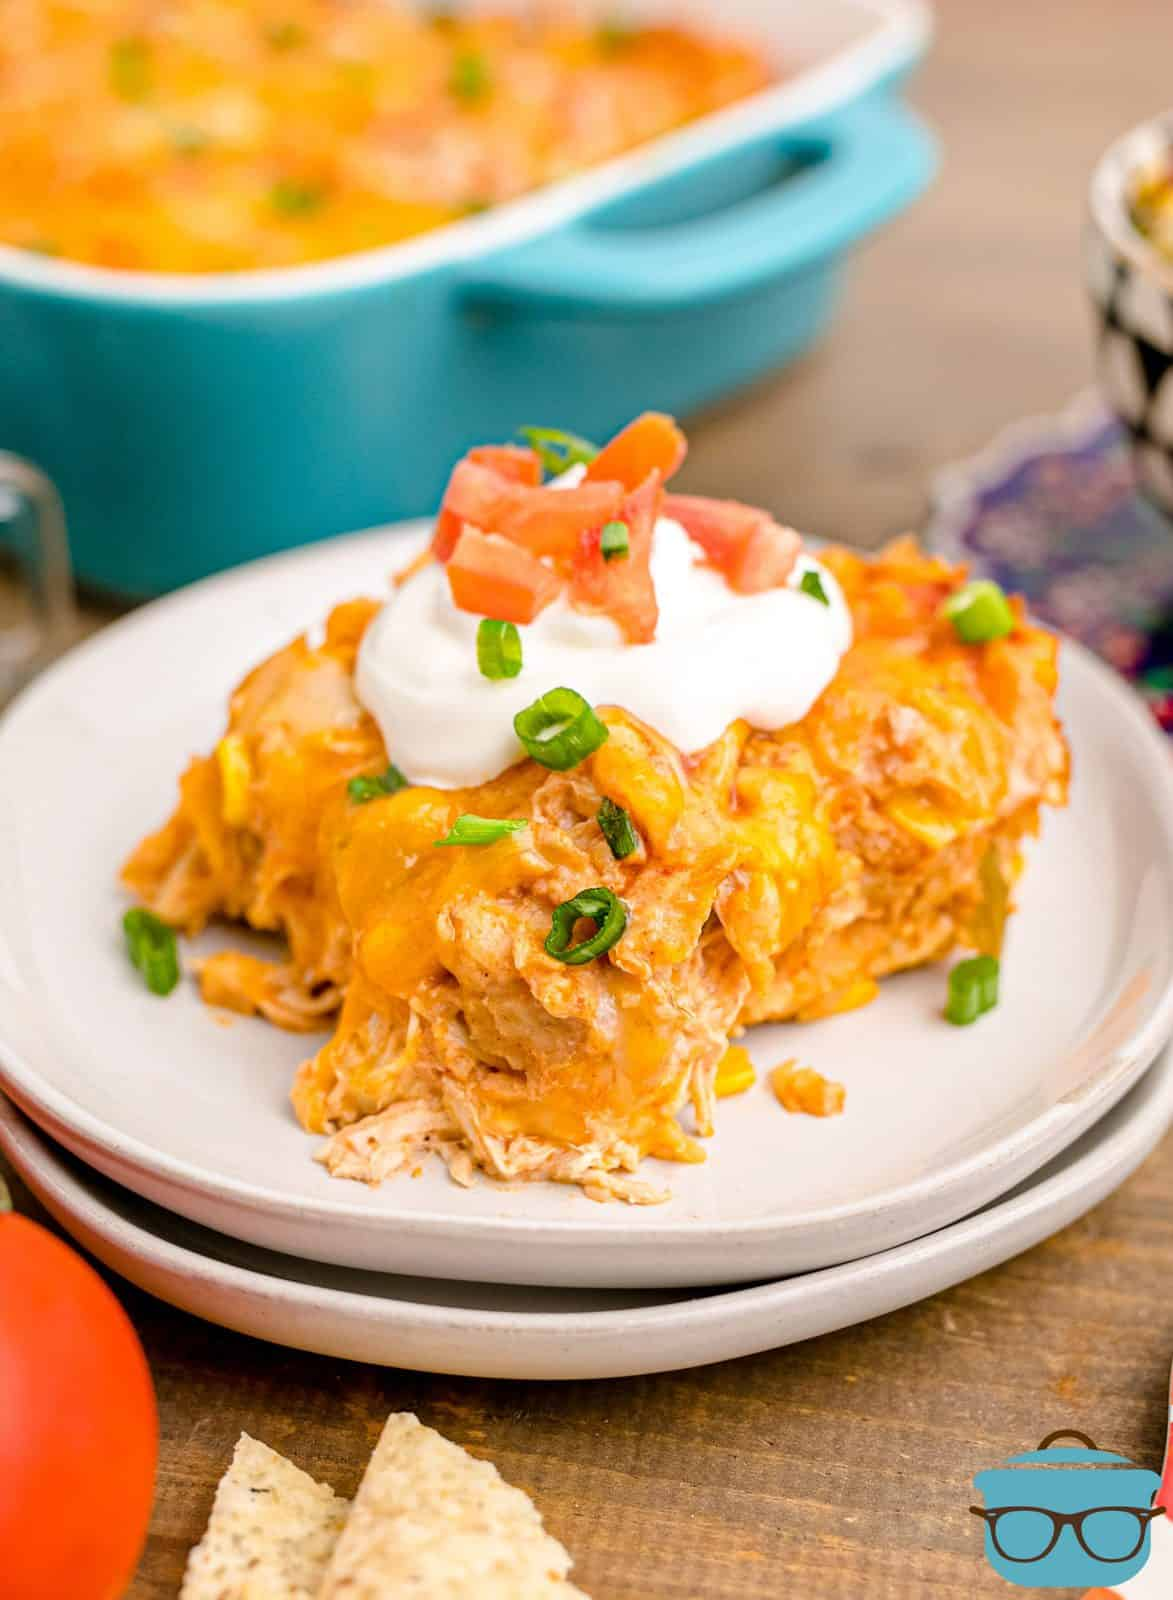 Plate of Lazy Chicken Enchiladas topped with sour cream, green onions and tomatoes.